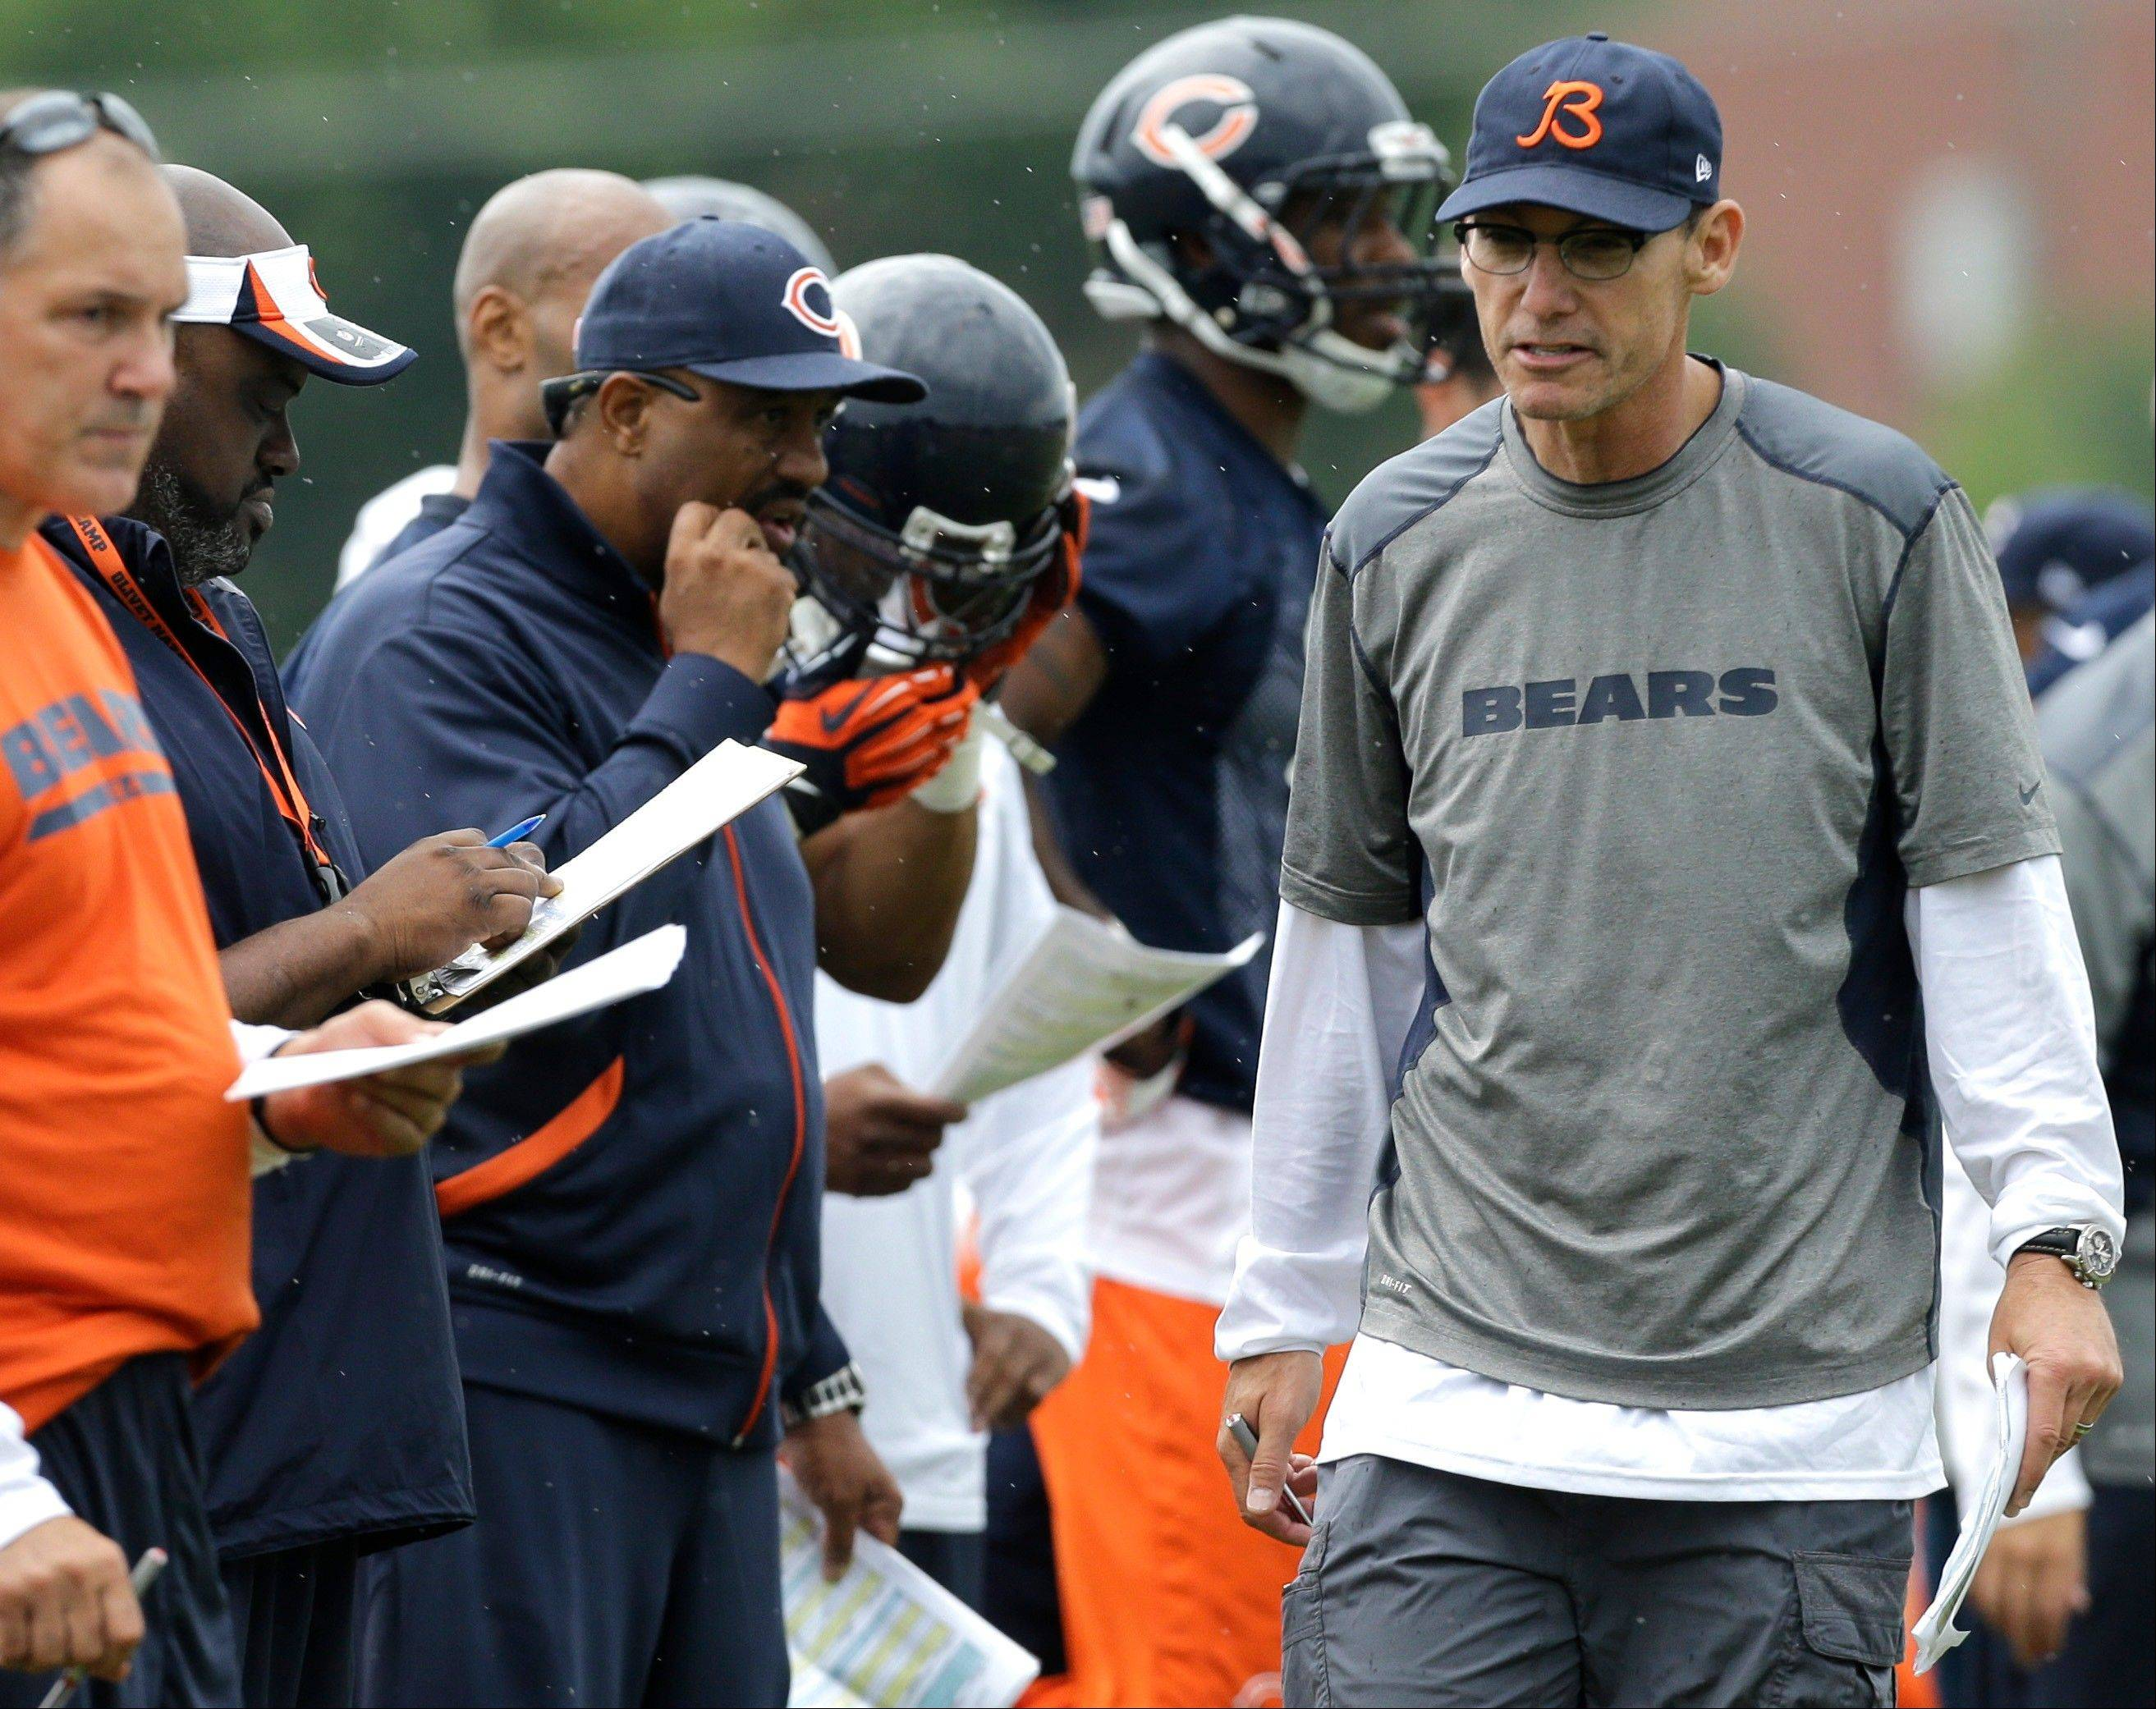 Chicago Bears head coach Marc Trestman, right, talks to coaching staff during training camp Friday at Olivet Nazarene University in Bourbonnais.